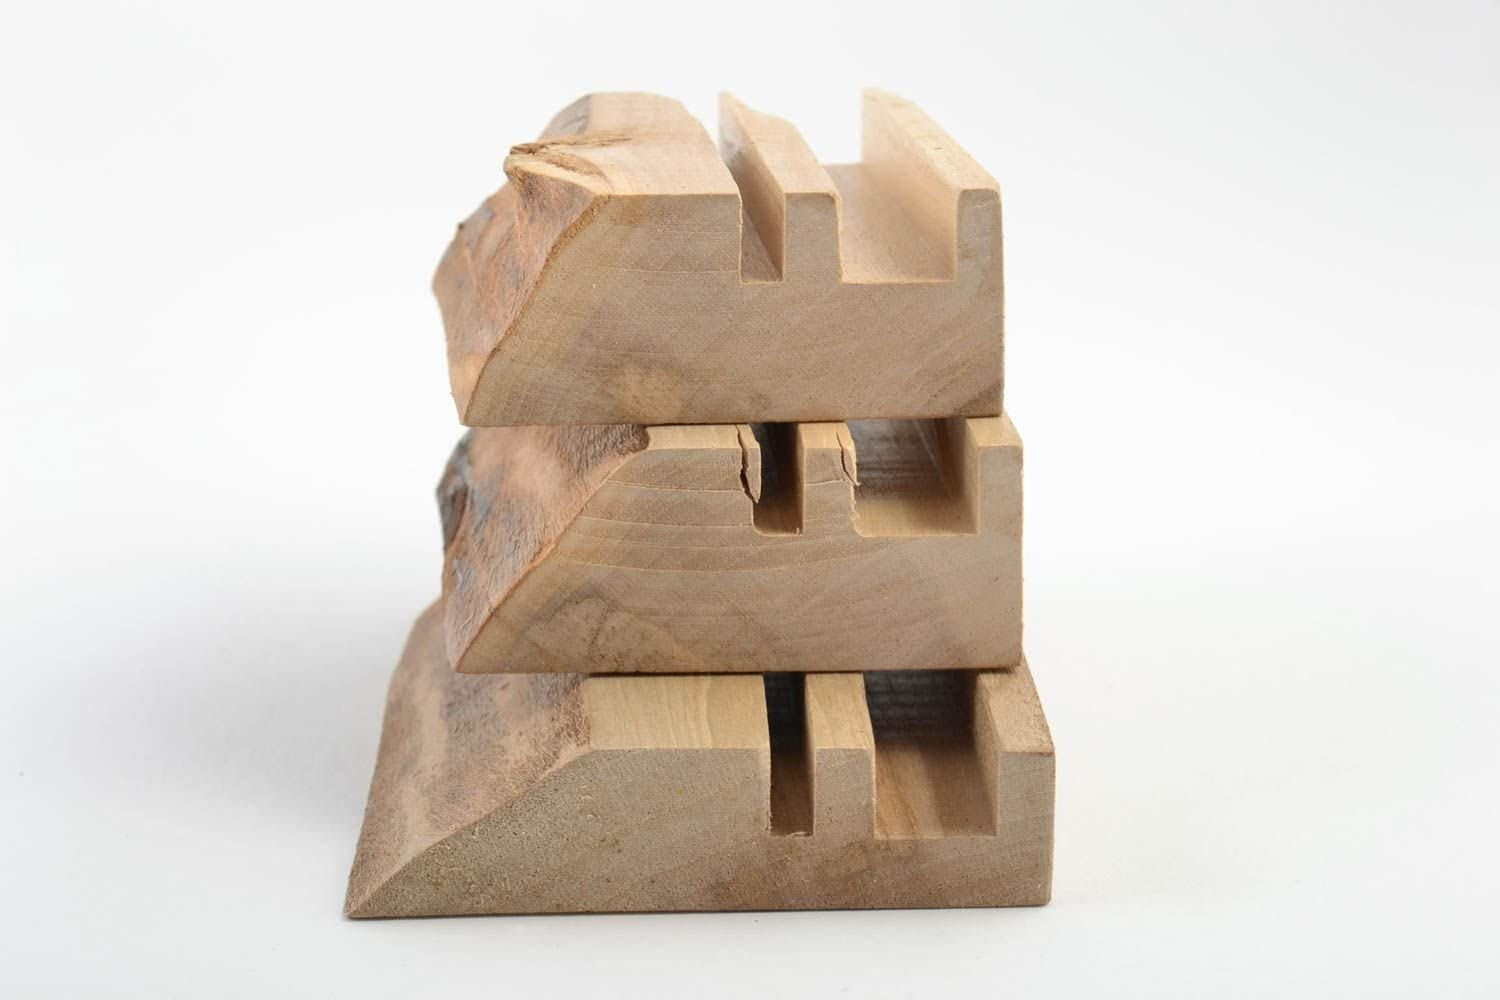 Handmade Stylish Unusual Set Of Stands For Gadgets Made Of Wood 3 Pieces